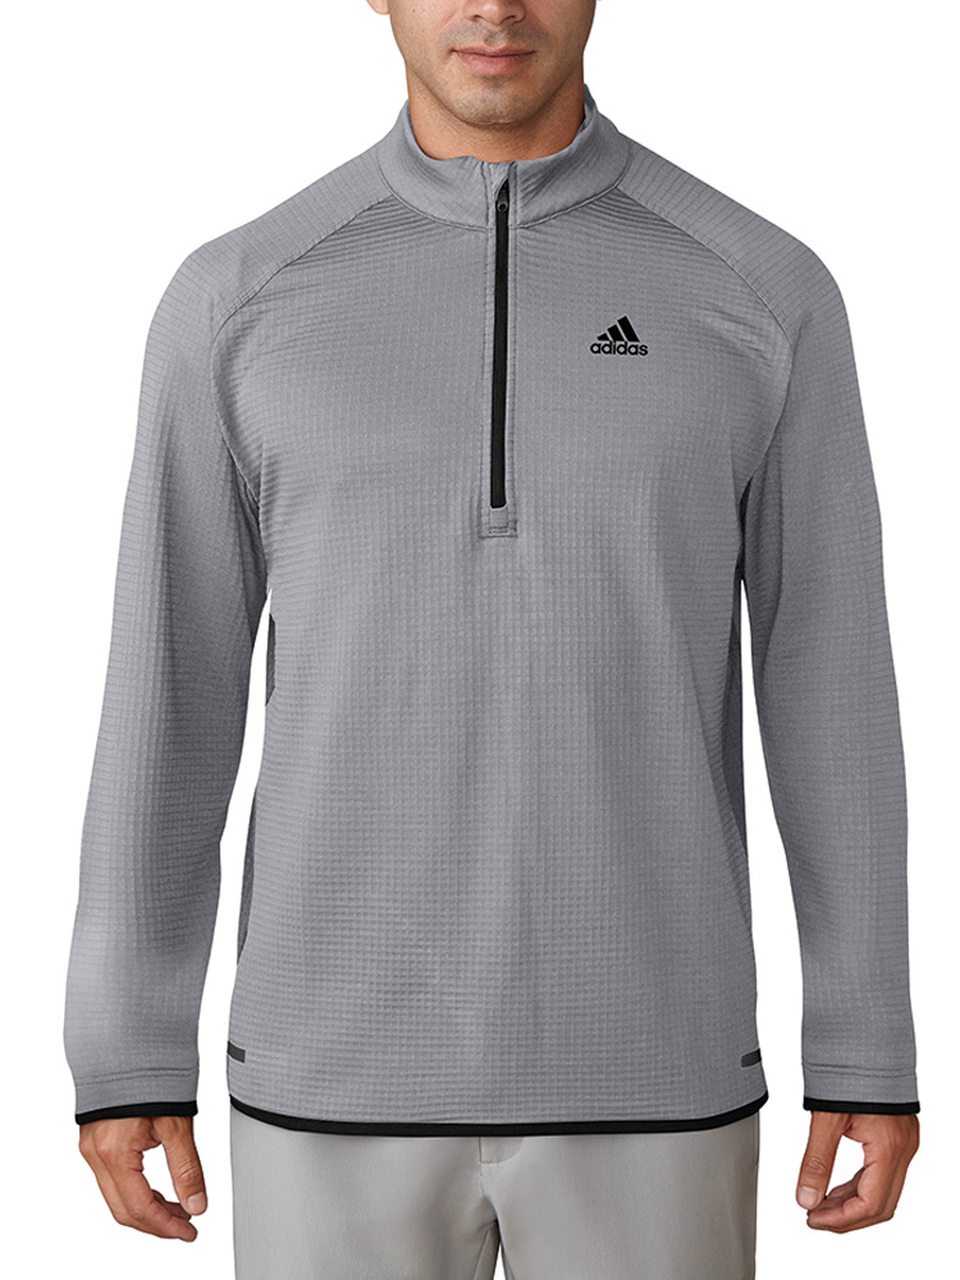 395e2d623c Adidas Climaheat Griddled Qtr Zip Jacket - Mid Grey For Sale | GolfBox